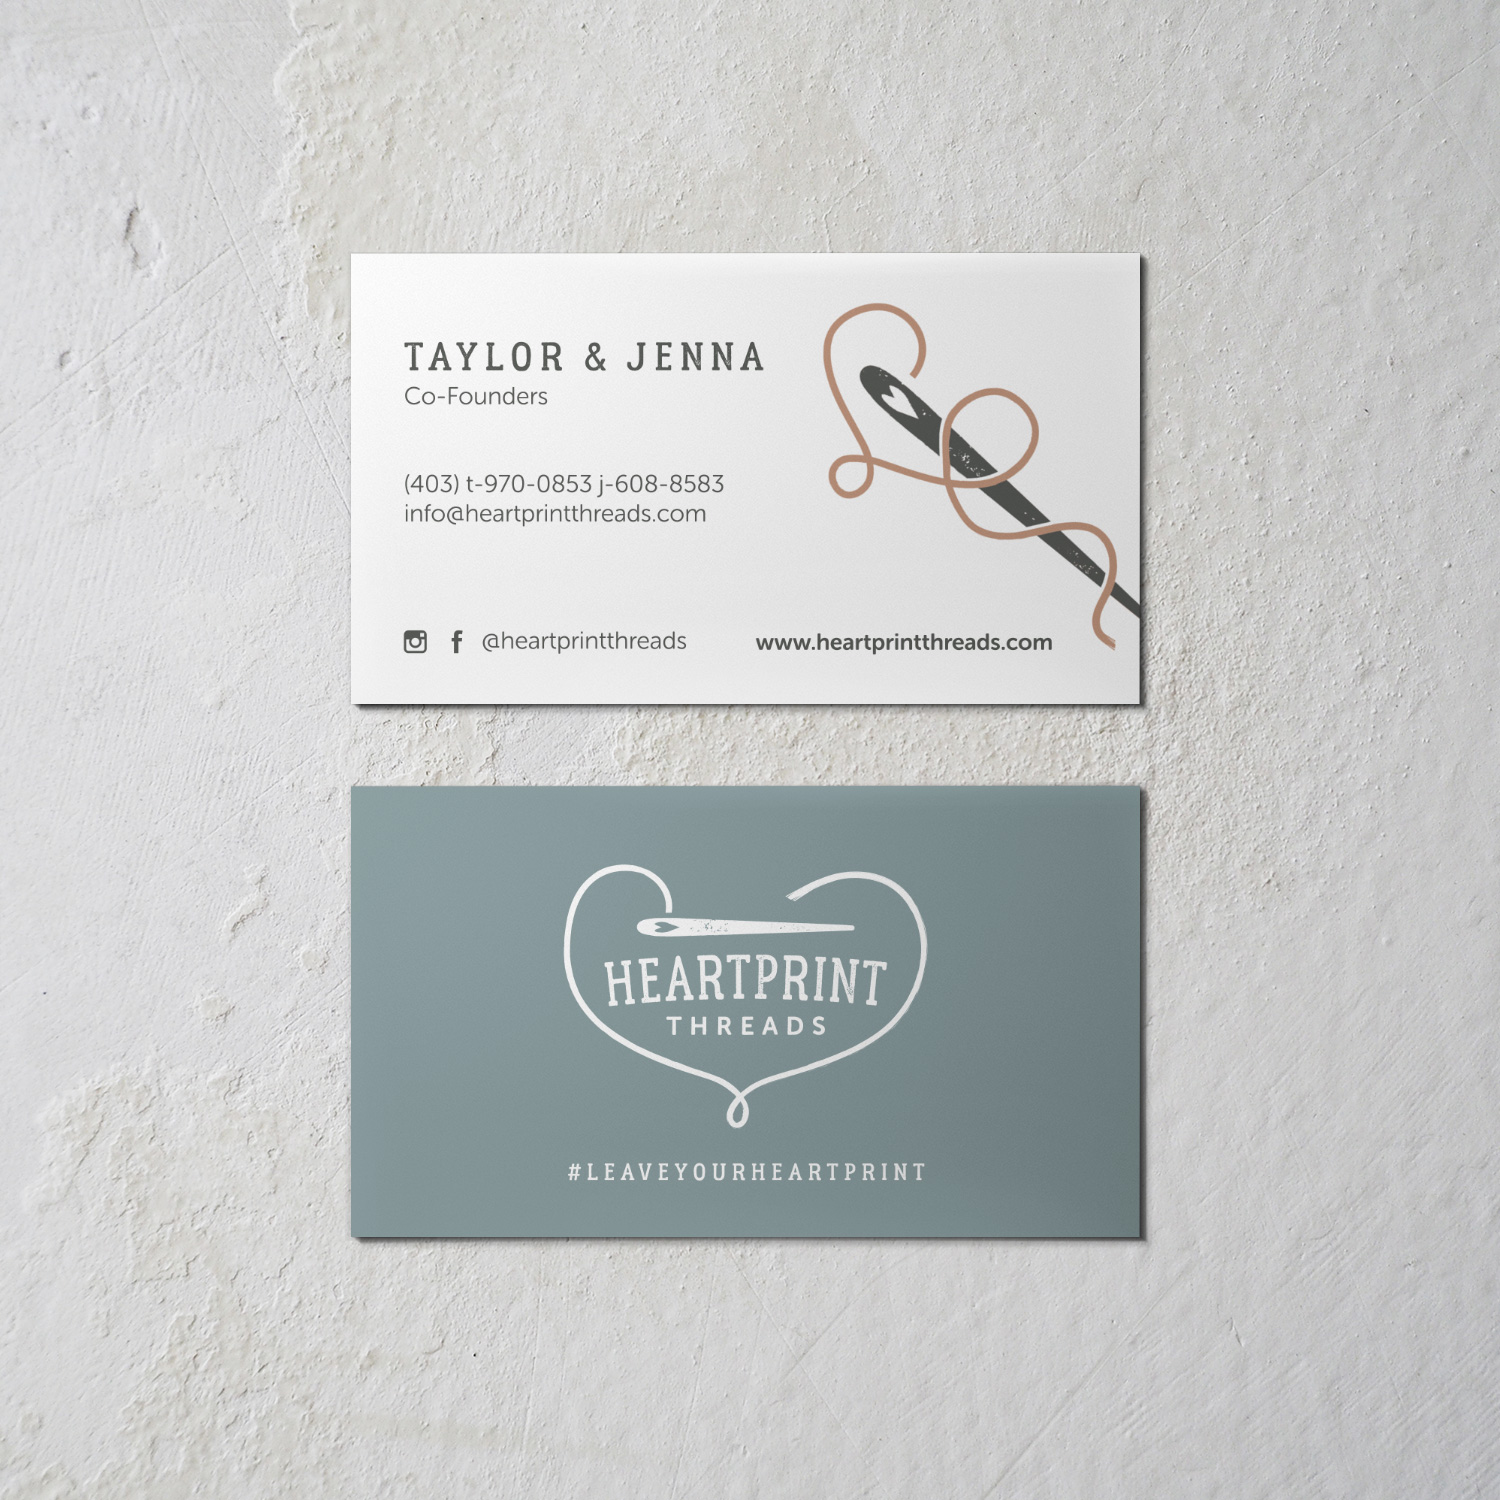 Heartprint-Threads-Business-Cards.jpg